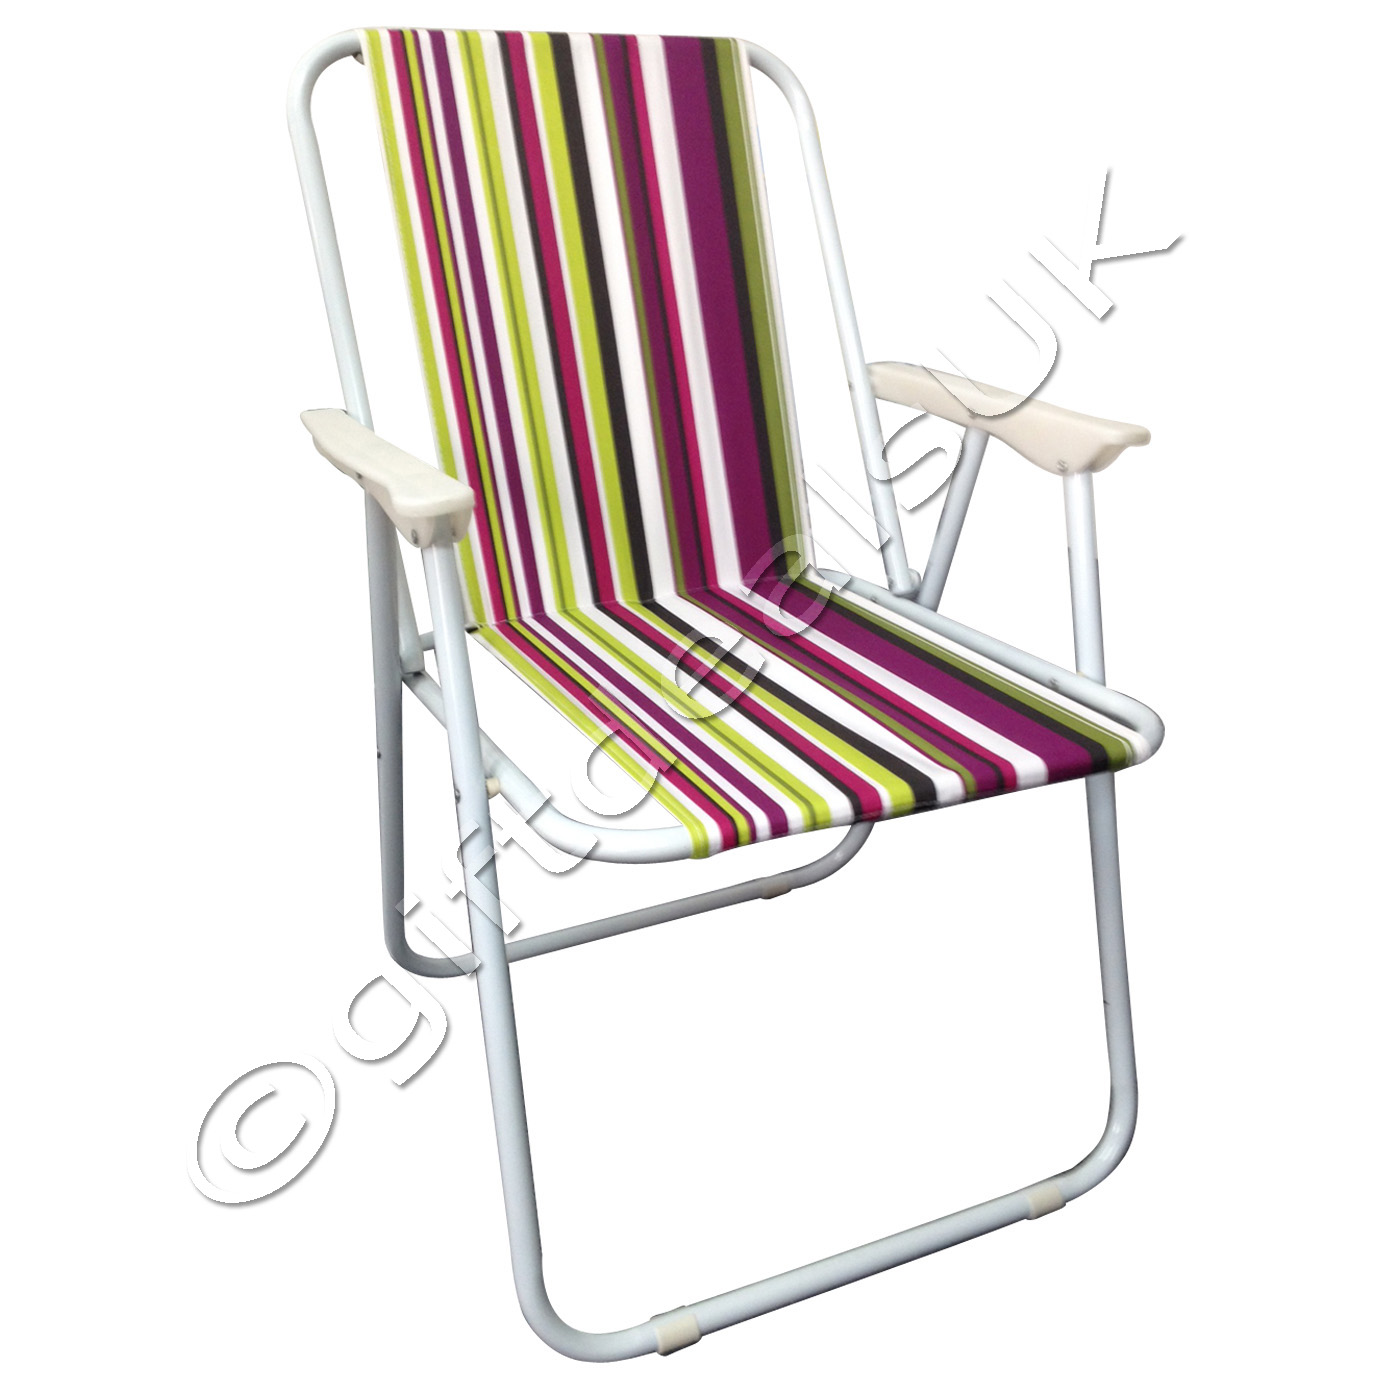 NEW DESIGN PORTABLE FOLDING DECK CHAIR OUTDOOR GARDEN LIGHTWEIGHT CAMPING CHA